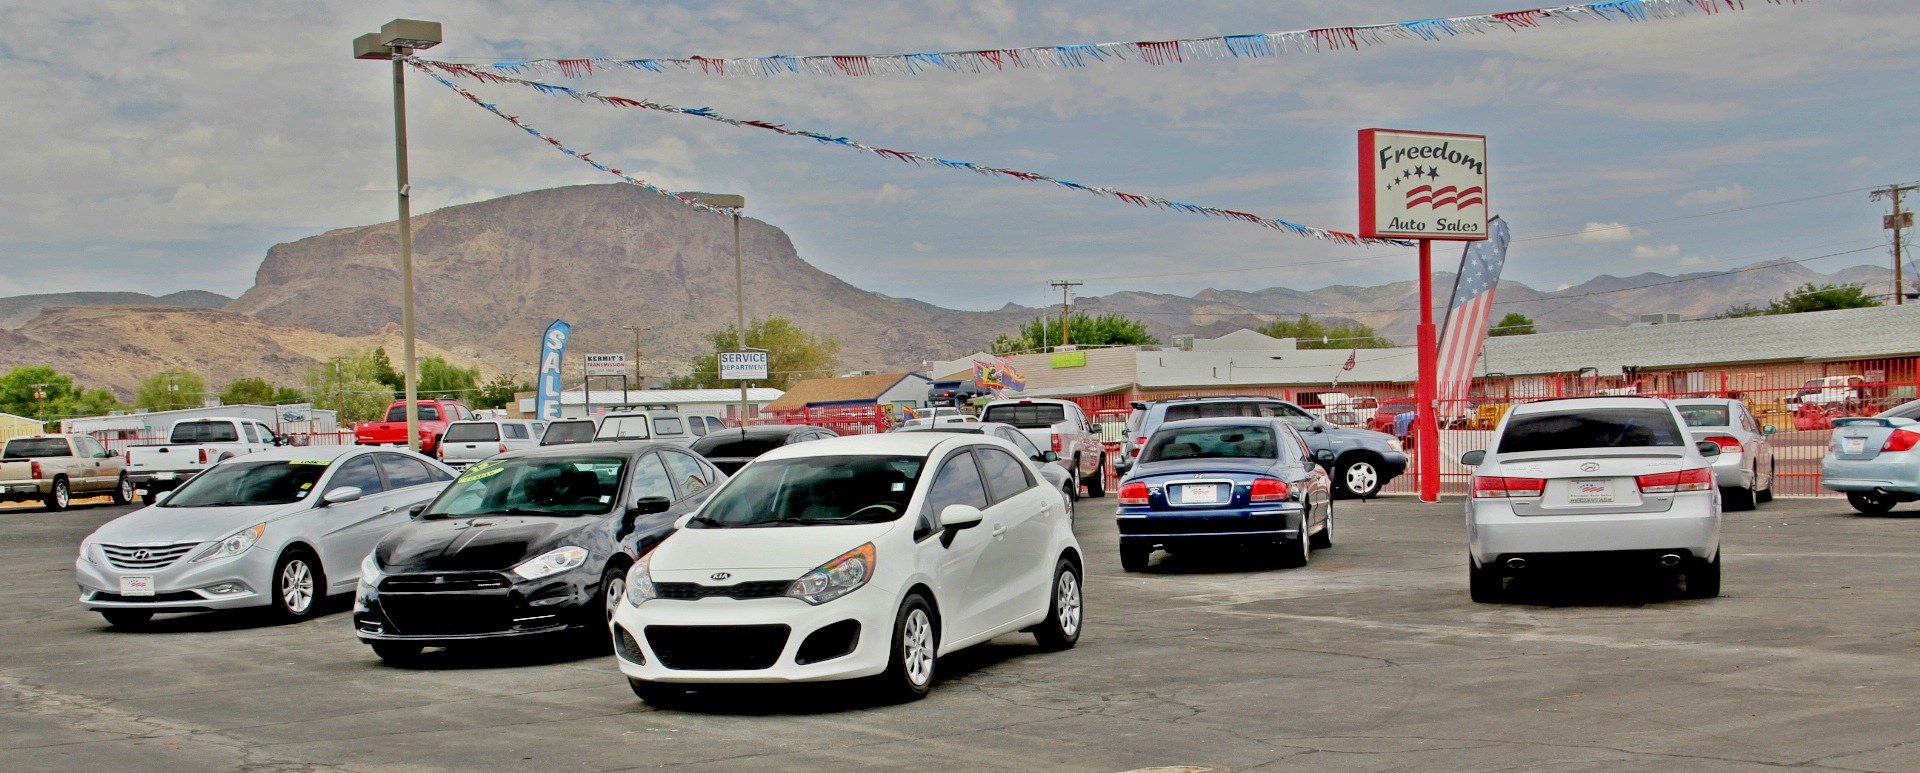 Kingman-AZ-used-cars-Freedom-Auto-Sales